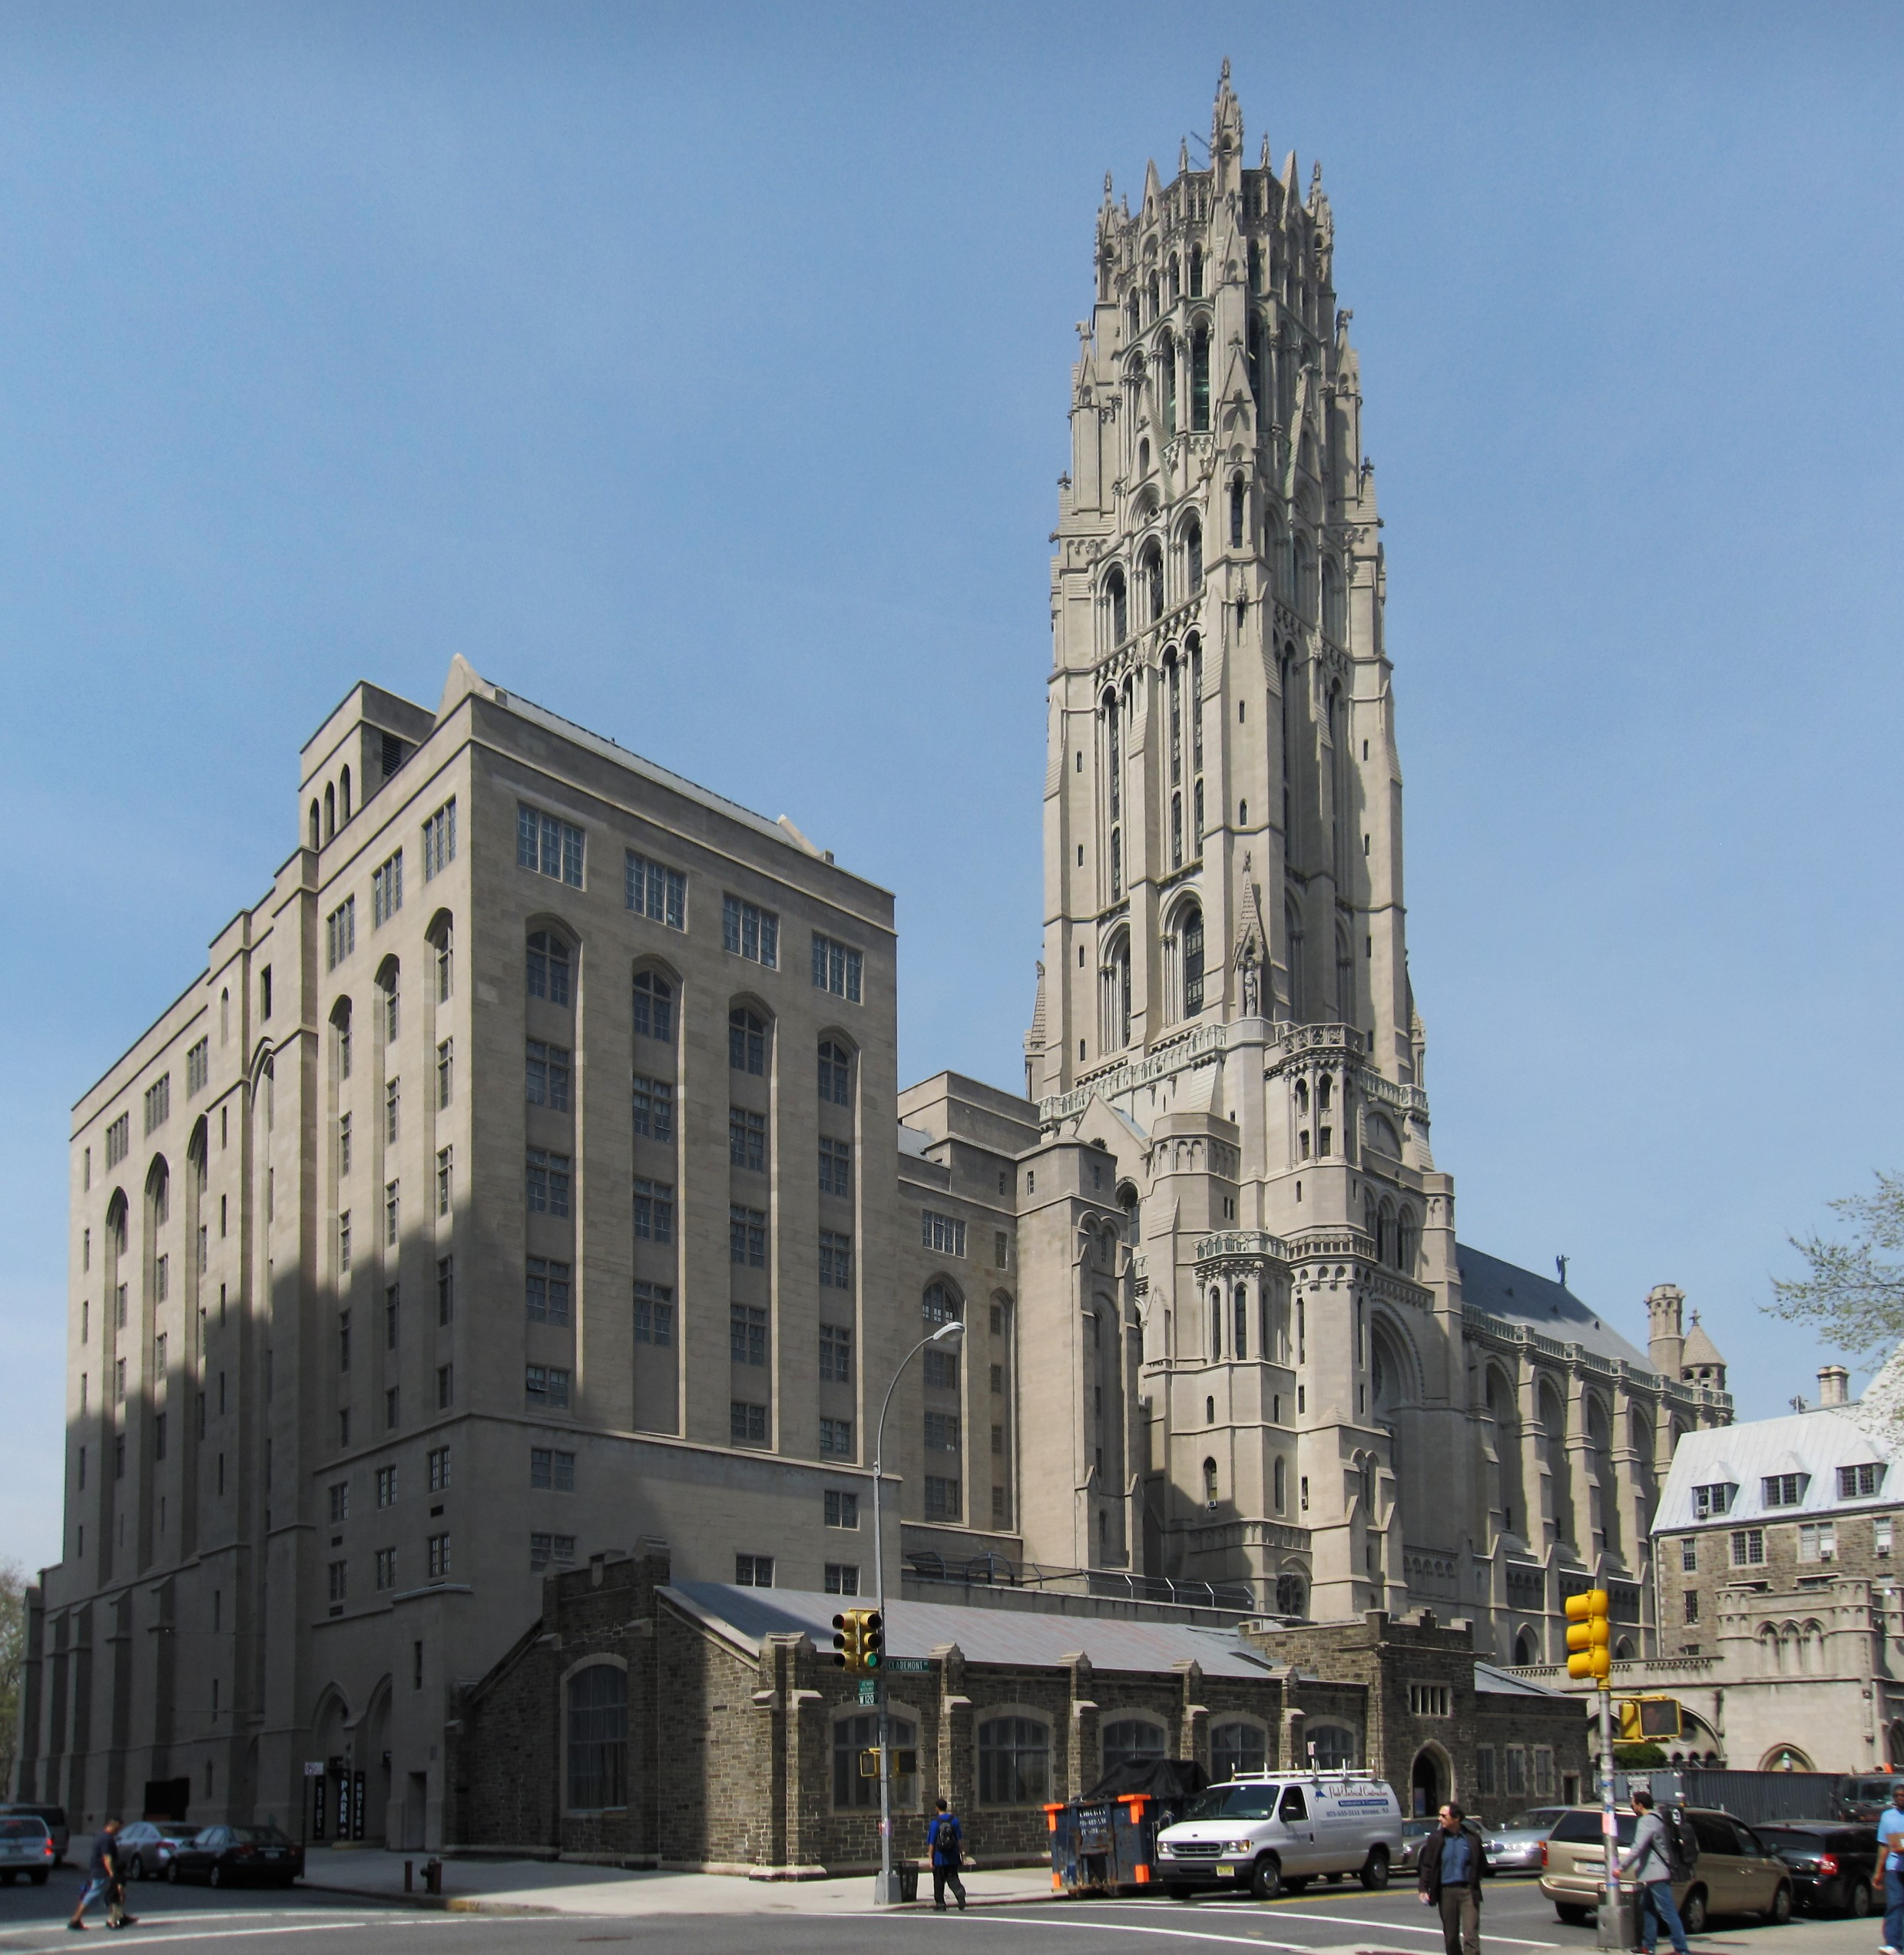 Manhatten New York: Check Out The Grandiose Riverside Church In New York City